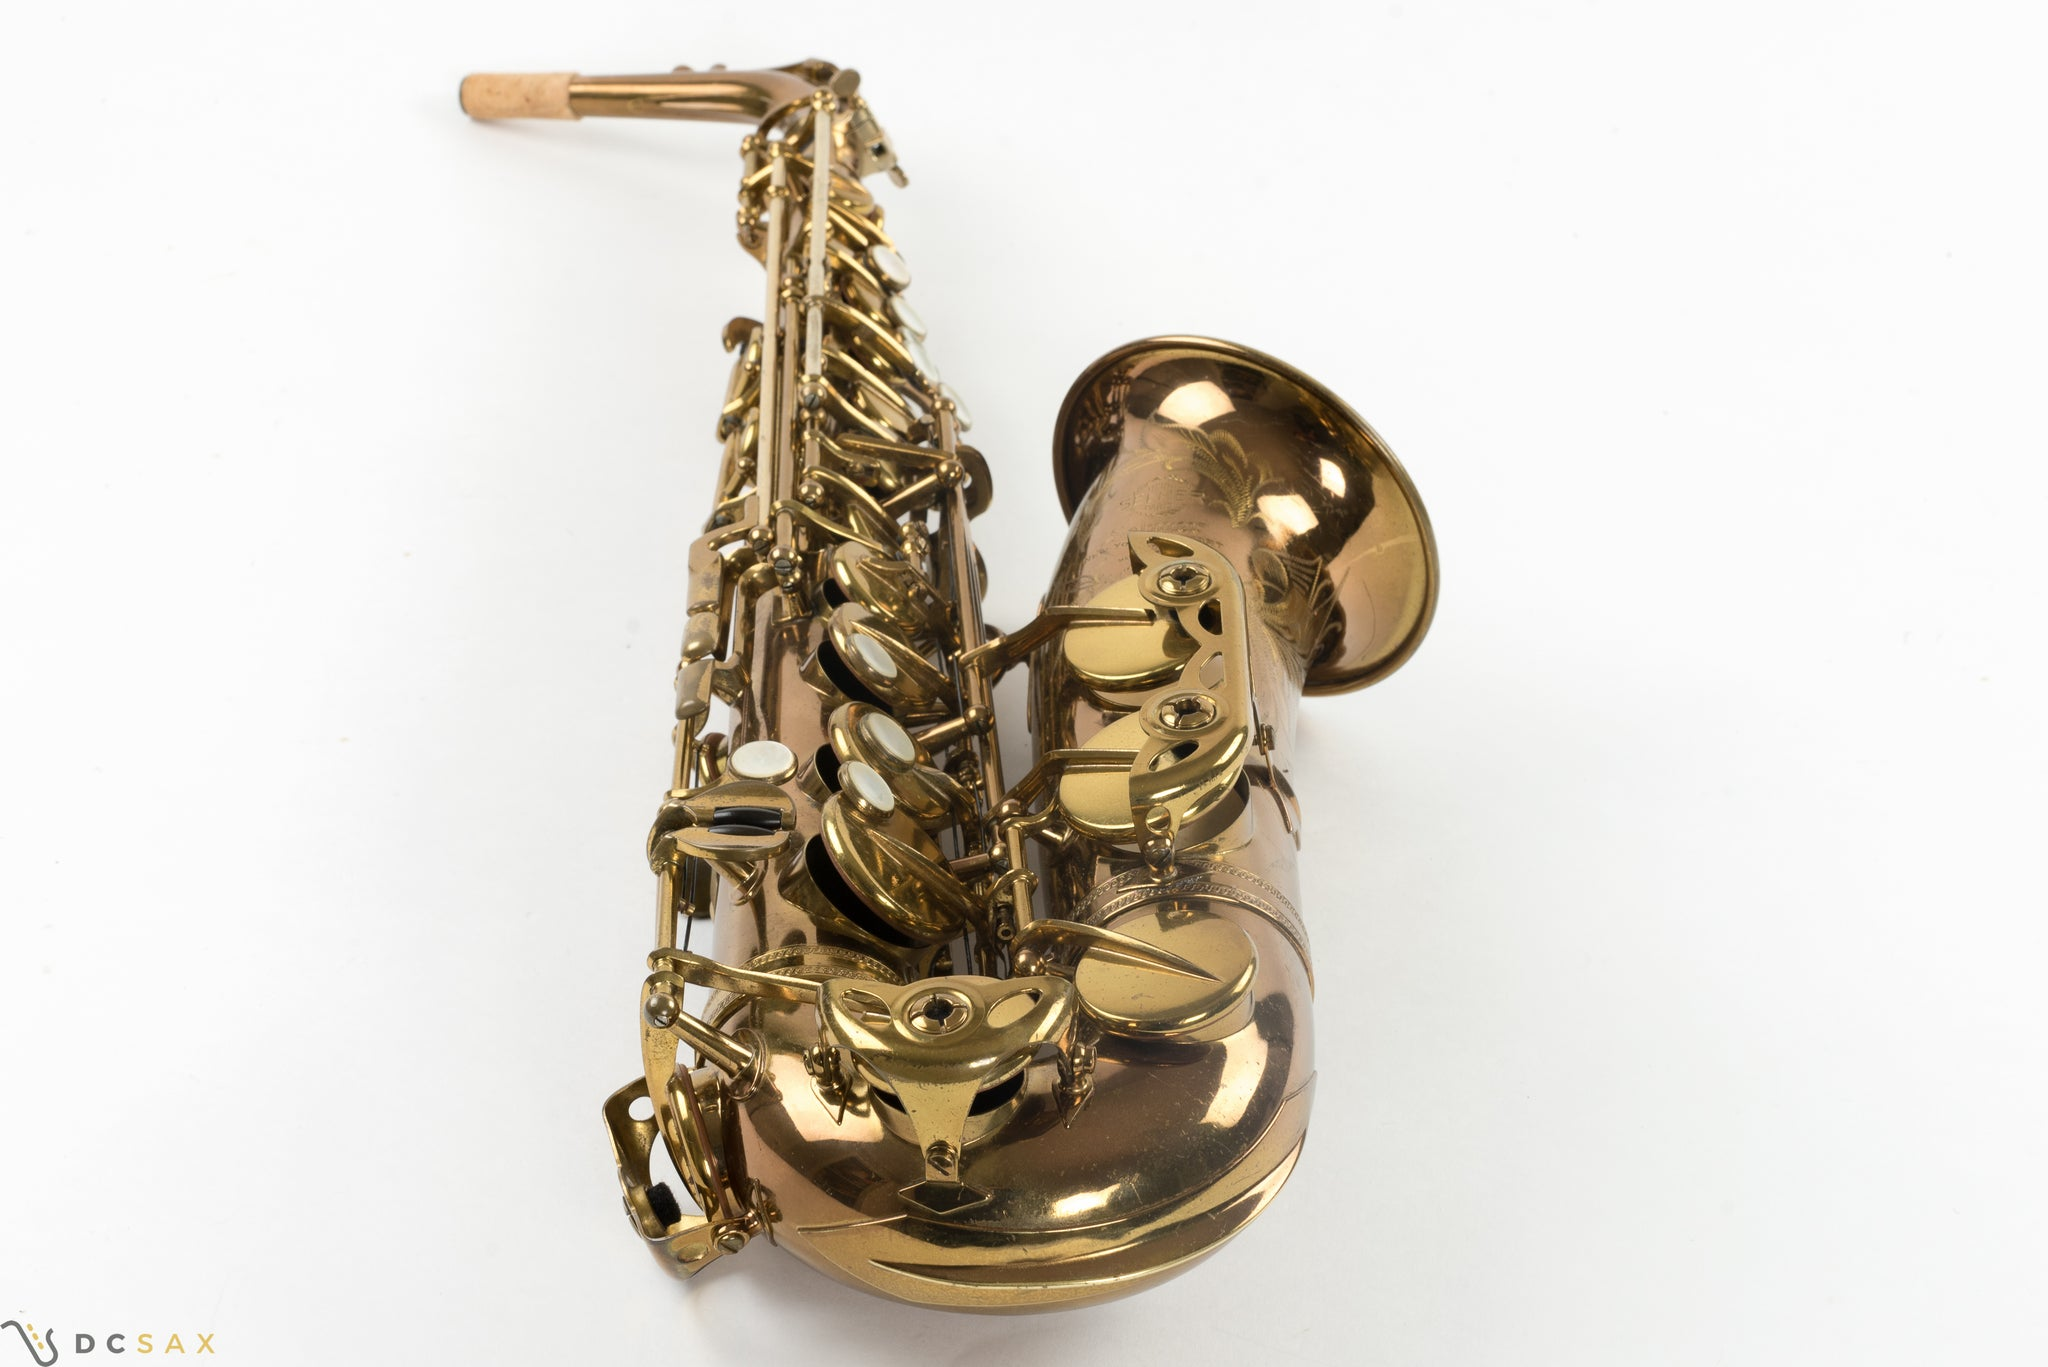 98,xxx Selmer Mark VI Alto Saxophone, Near Mint, Fresh Overhaul